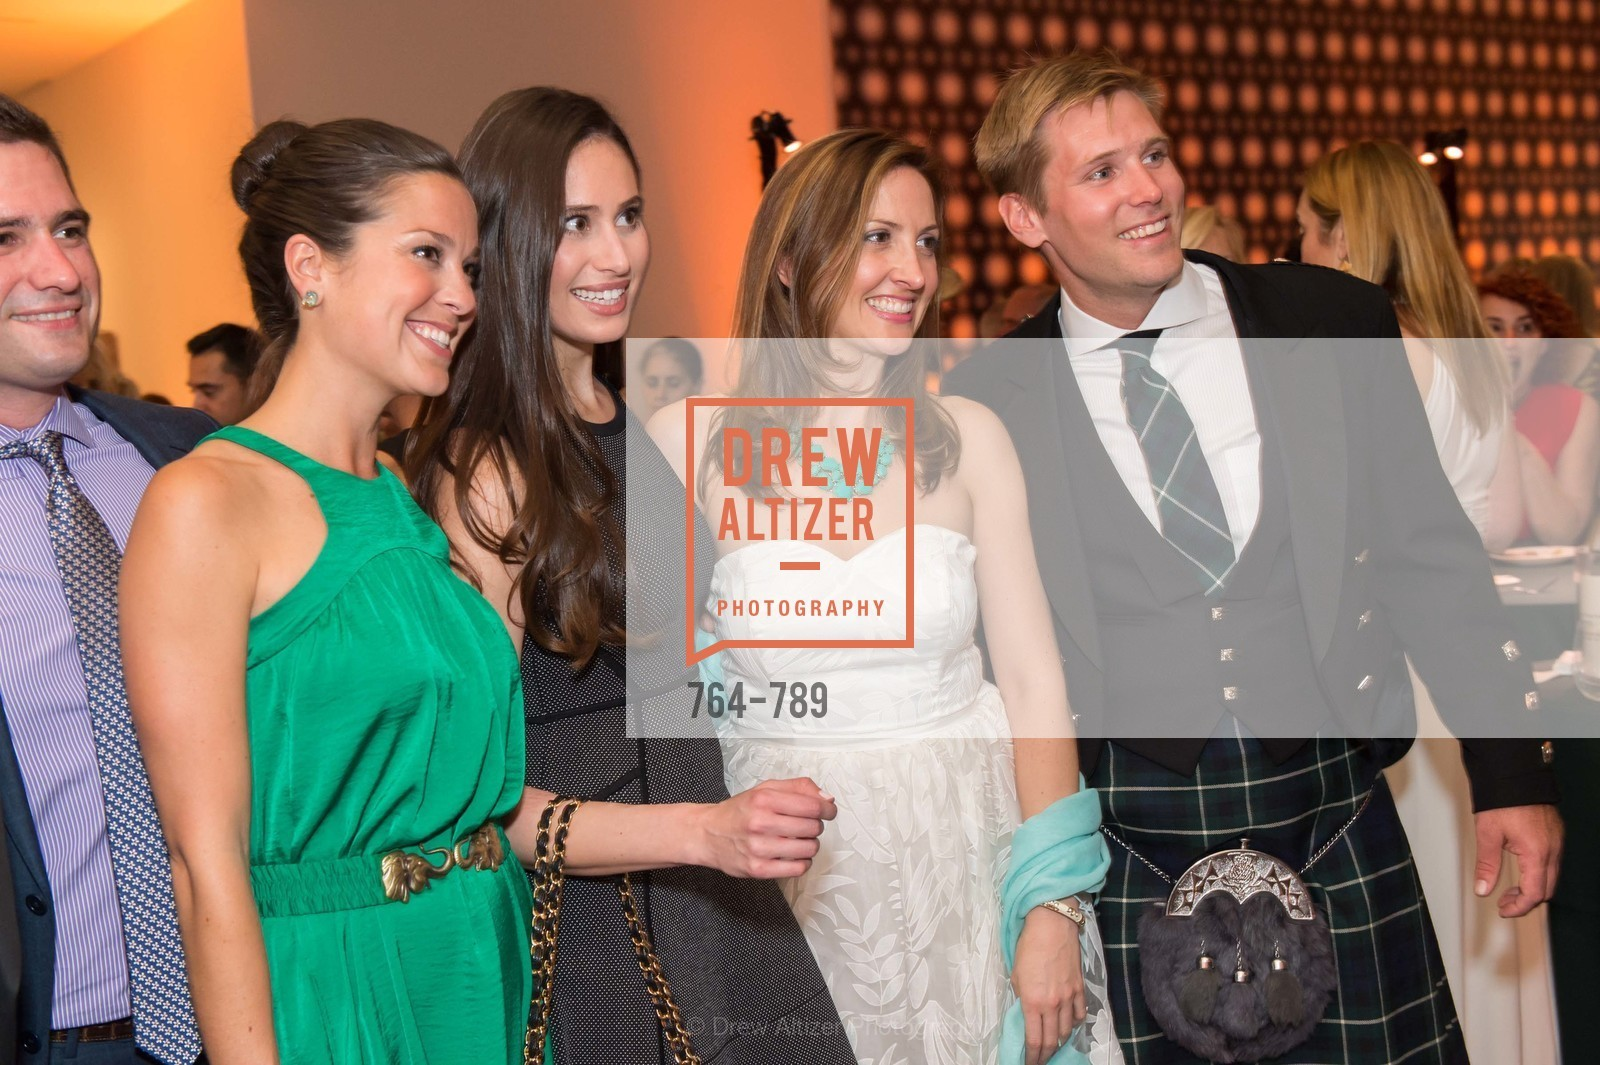 Anna Schmunk, Katie O'Neill, Elizabeth Heuser, Nick Price, ALONZO KING LINE'S Ballet Spring Gala 2015, US, April 11th, 2015,Drew Altizer, Drew Altizer Photography, full-service agency, private events, San Francisco photographer, photographer california